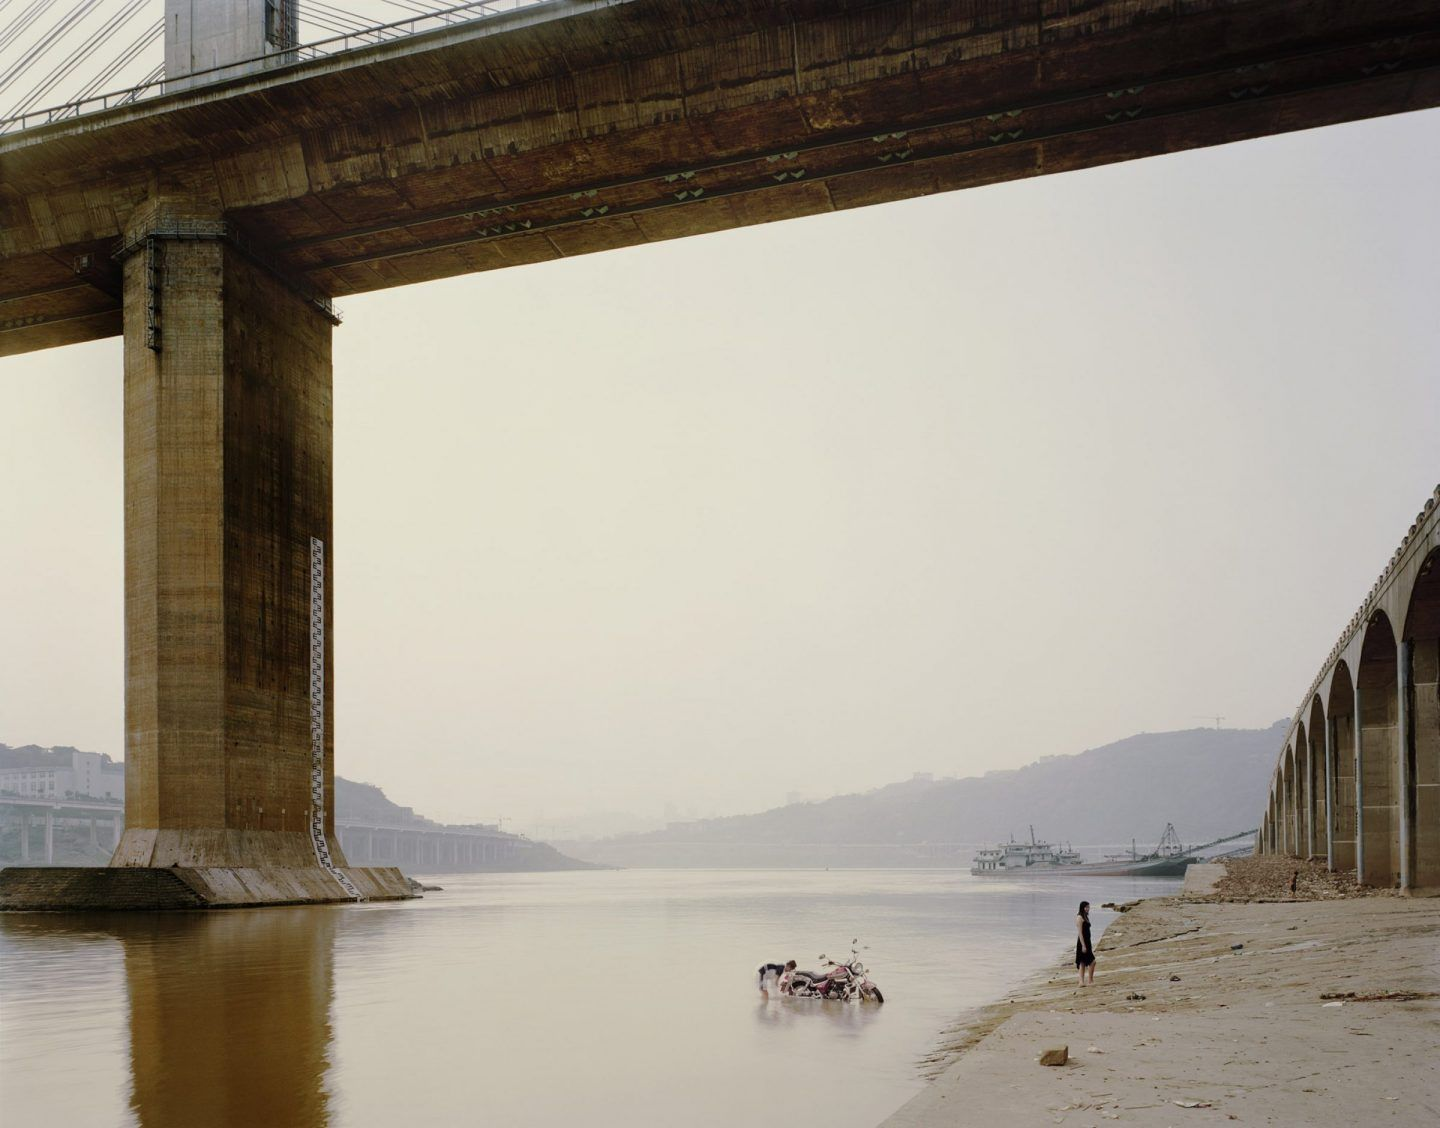 IGNANT-Photography-Nadav-Kander-Yangtze-The-Long-River-003